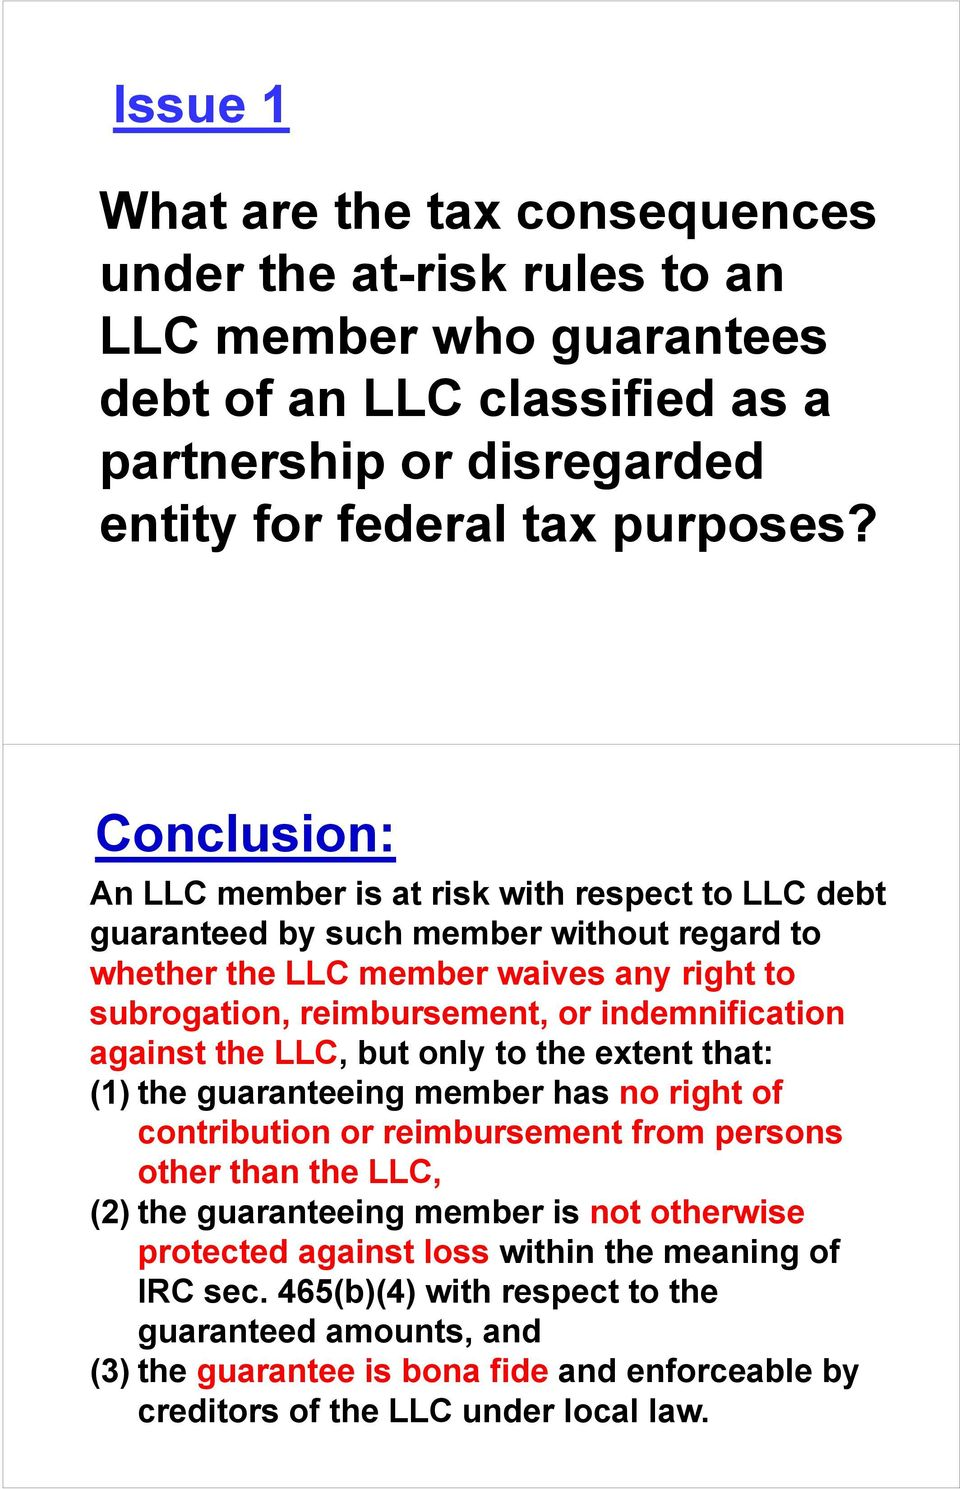 indemnification against the LLC, but only to the extent that: (1) the guaranteeing member has no right of contribution or reimbursement from persons other than the LLC, (2) the guaranteeing